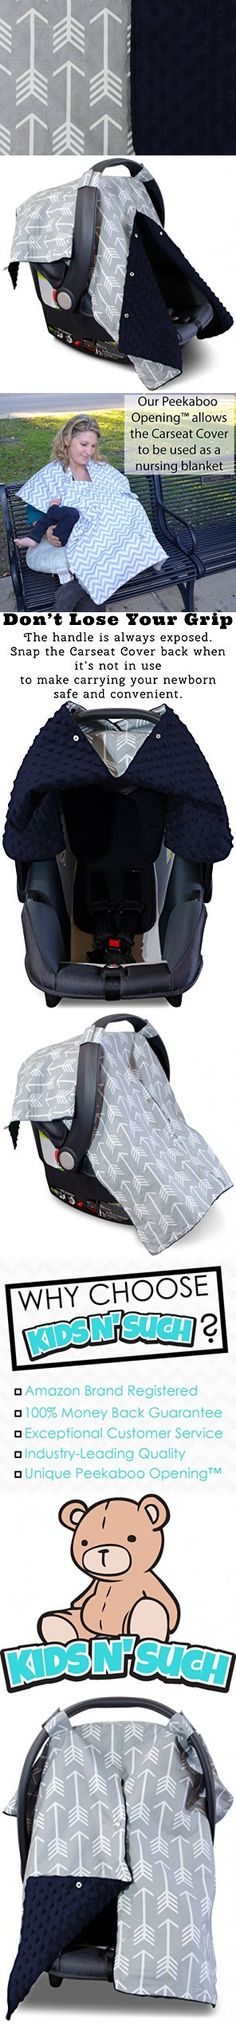 Premium Carseat Canopy Cover and Nursing Cover- Large Arrow Pattern w/ Dark Navy Minky | Best Infant Car Seat Canopy, Boy or Girl | Cool/ Warm Weather Cover | Baby Shower Gift for Breastfeeding Moms